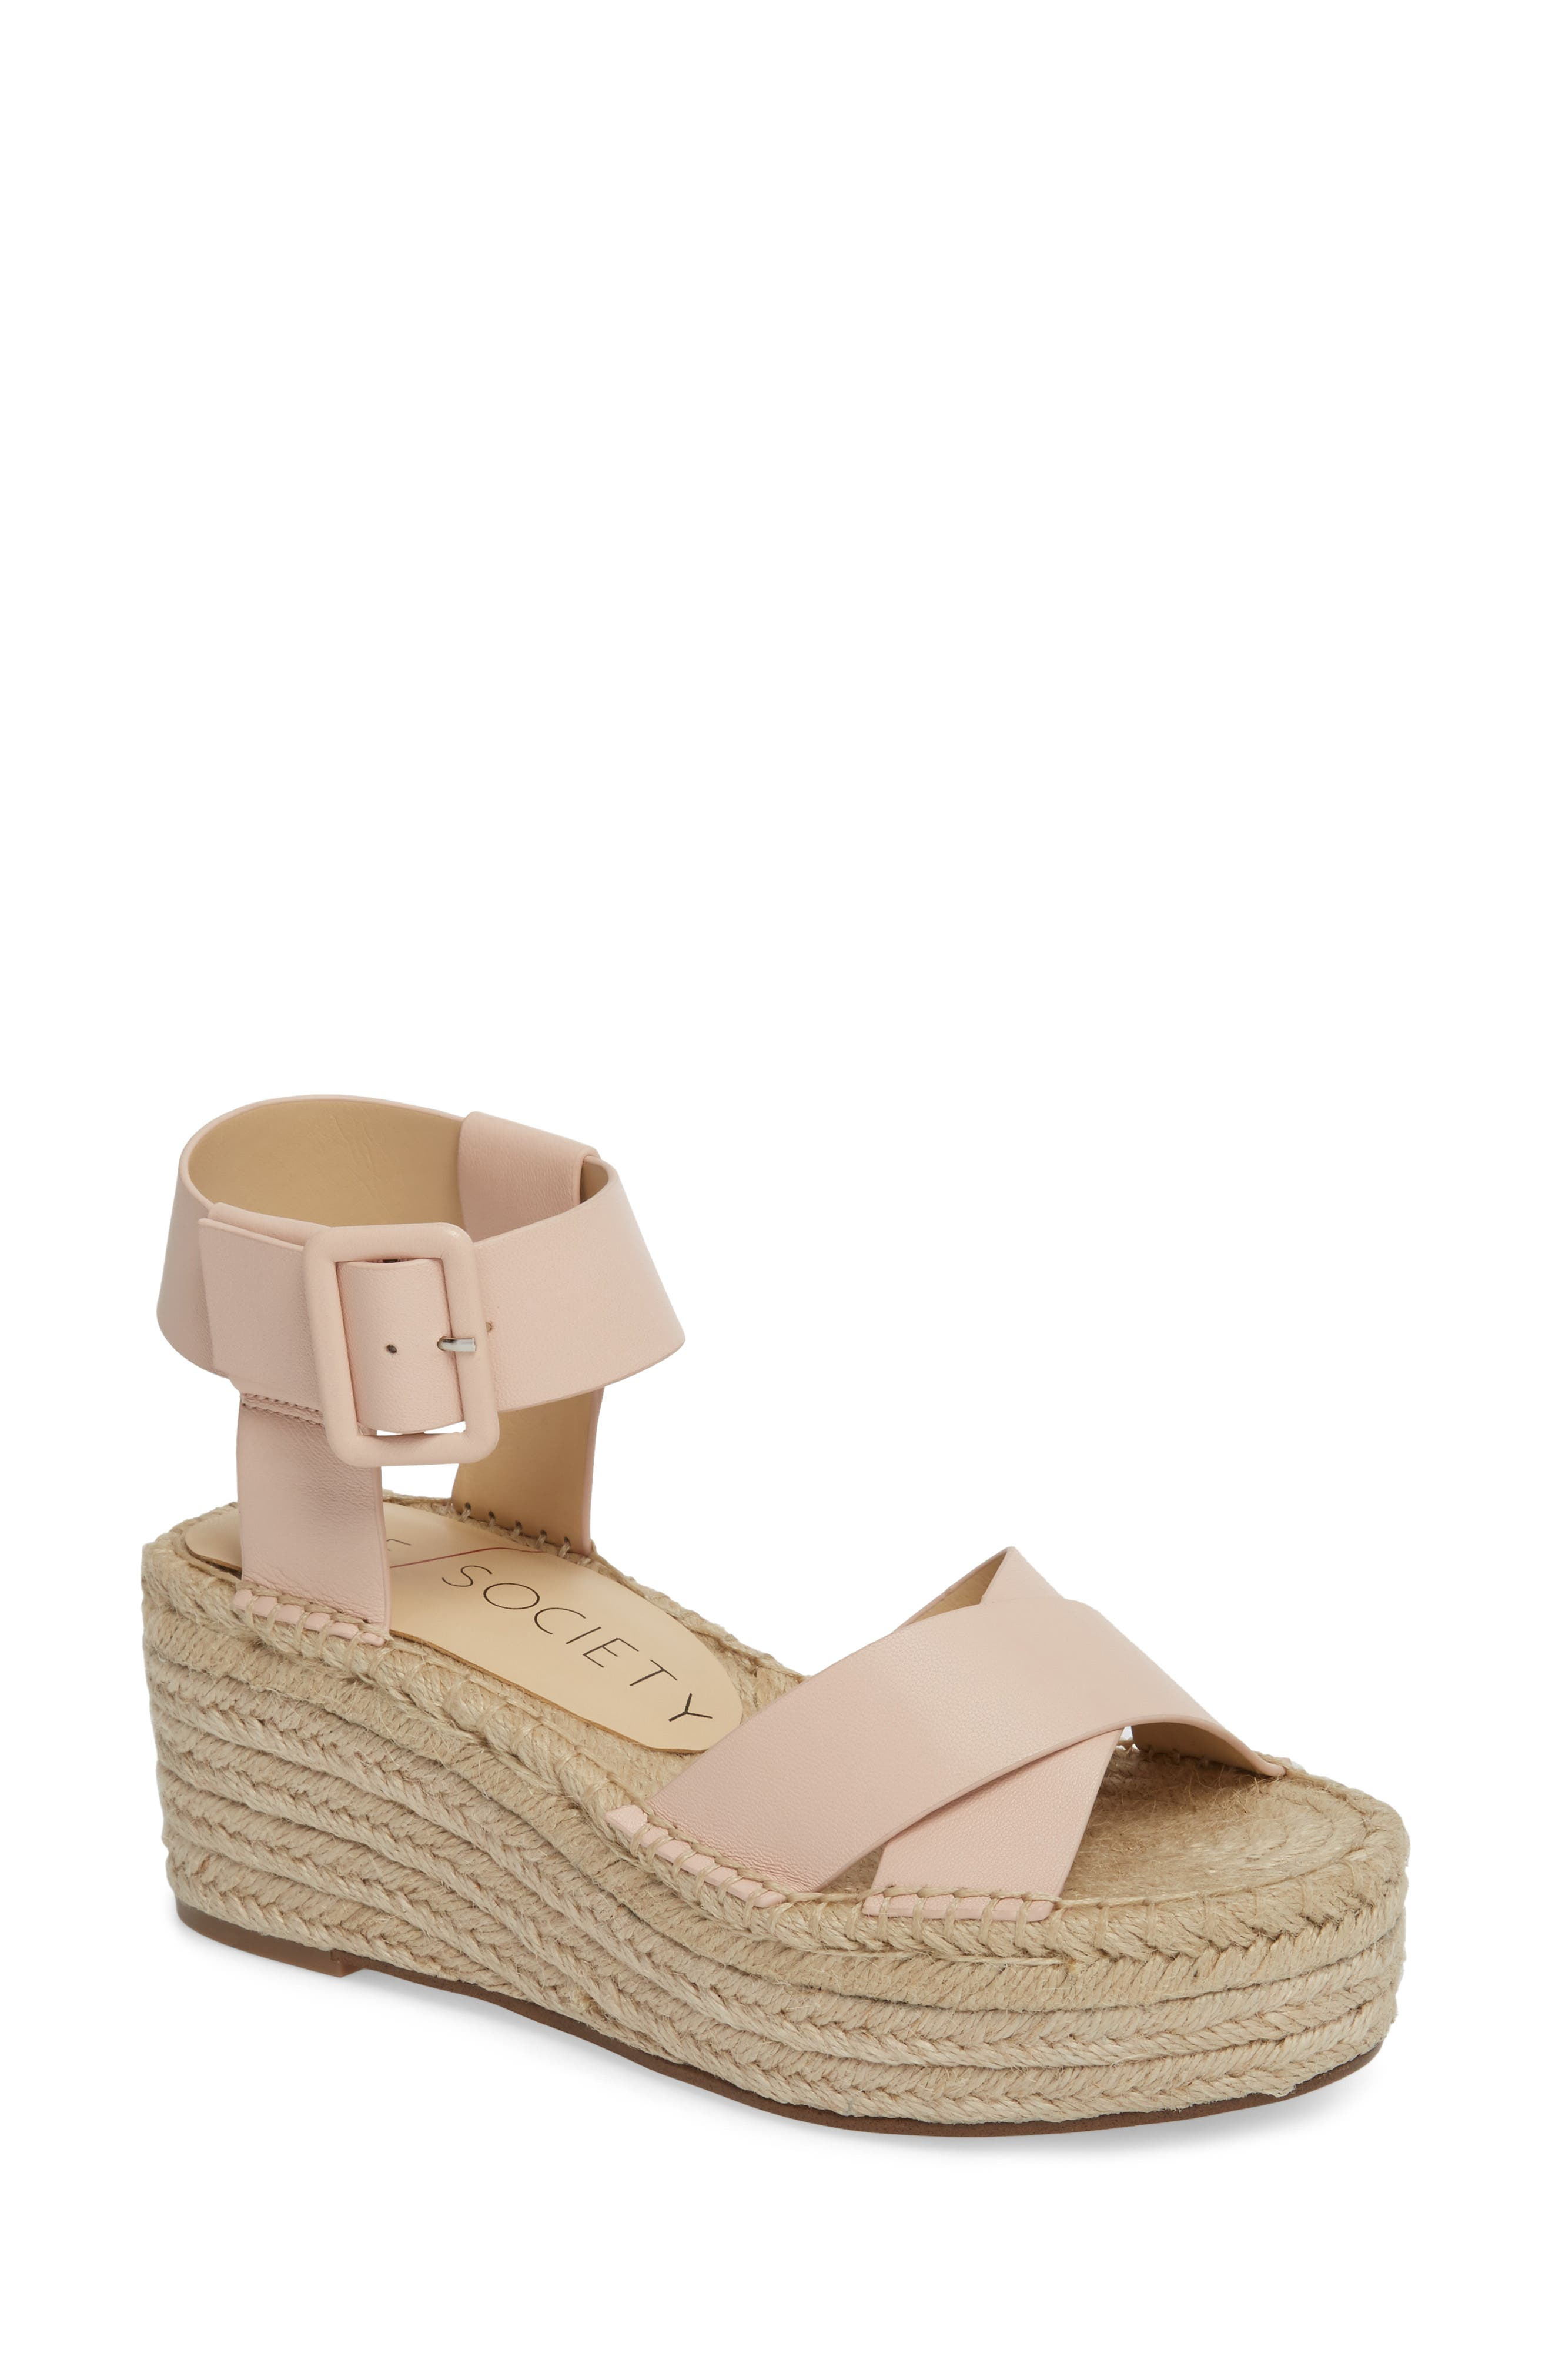 'Audrina' Platform Espadrille Sandal,                             Main thumbnail 1, color,                             Rose Blush